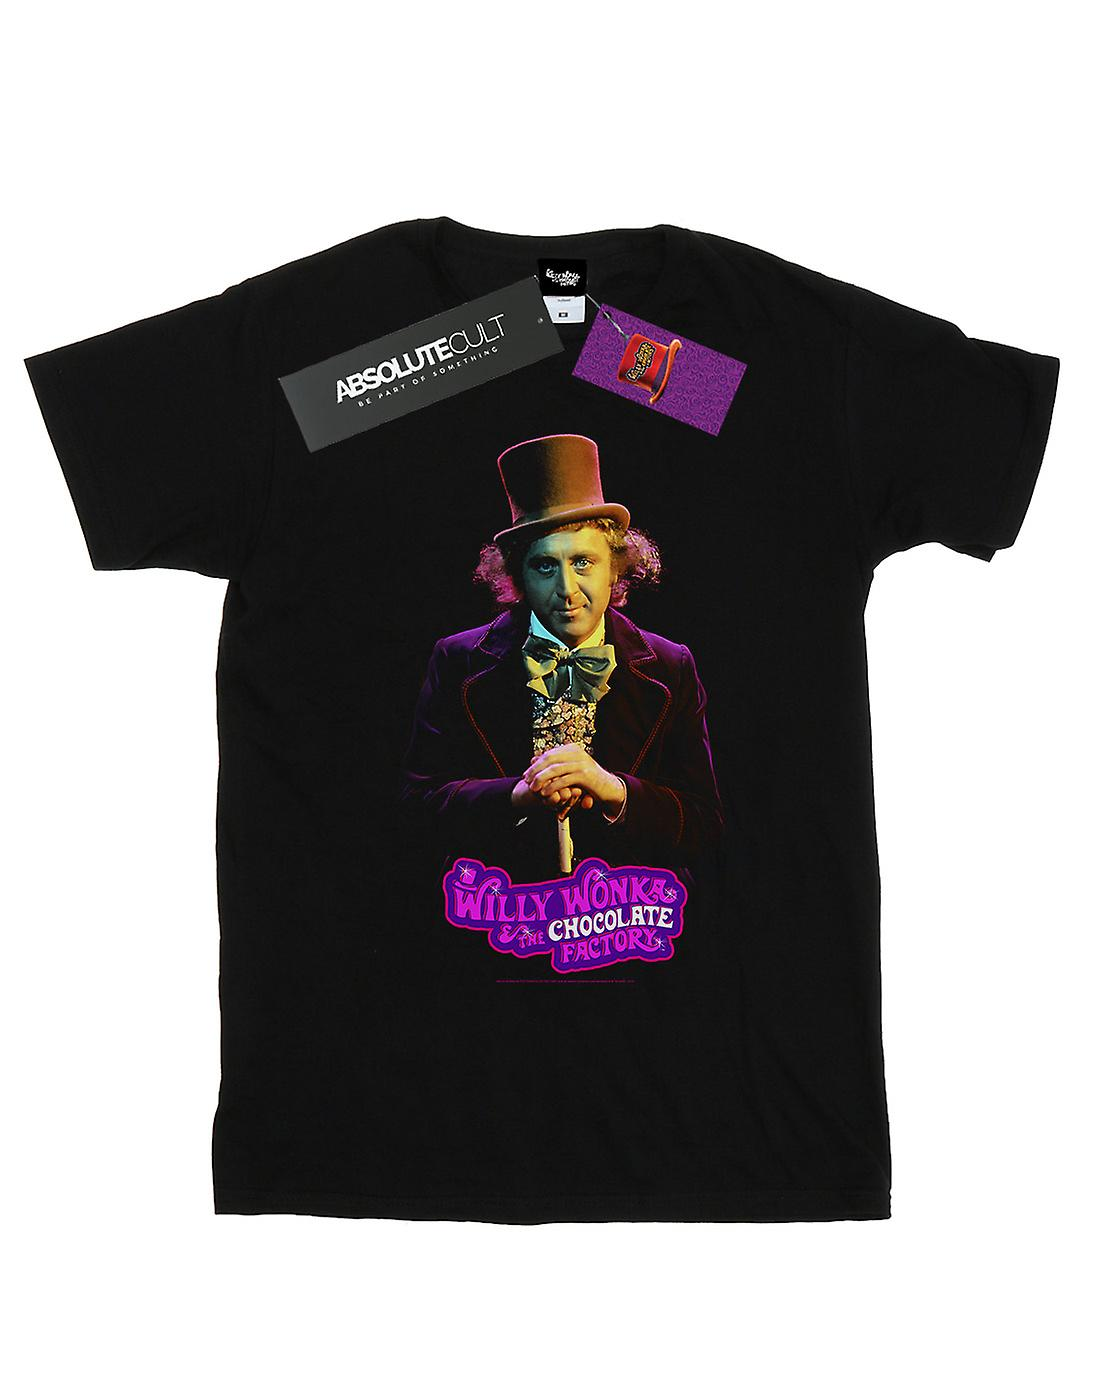 Willy Wonka And The Chocolate Factory Women's Dark Pose Boyfriend Fit T-Shirt